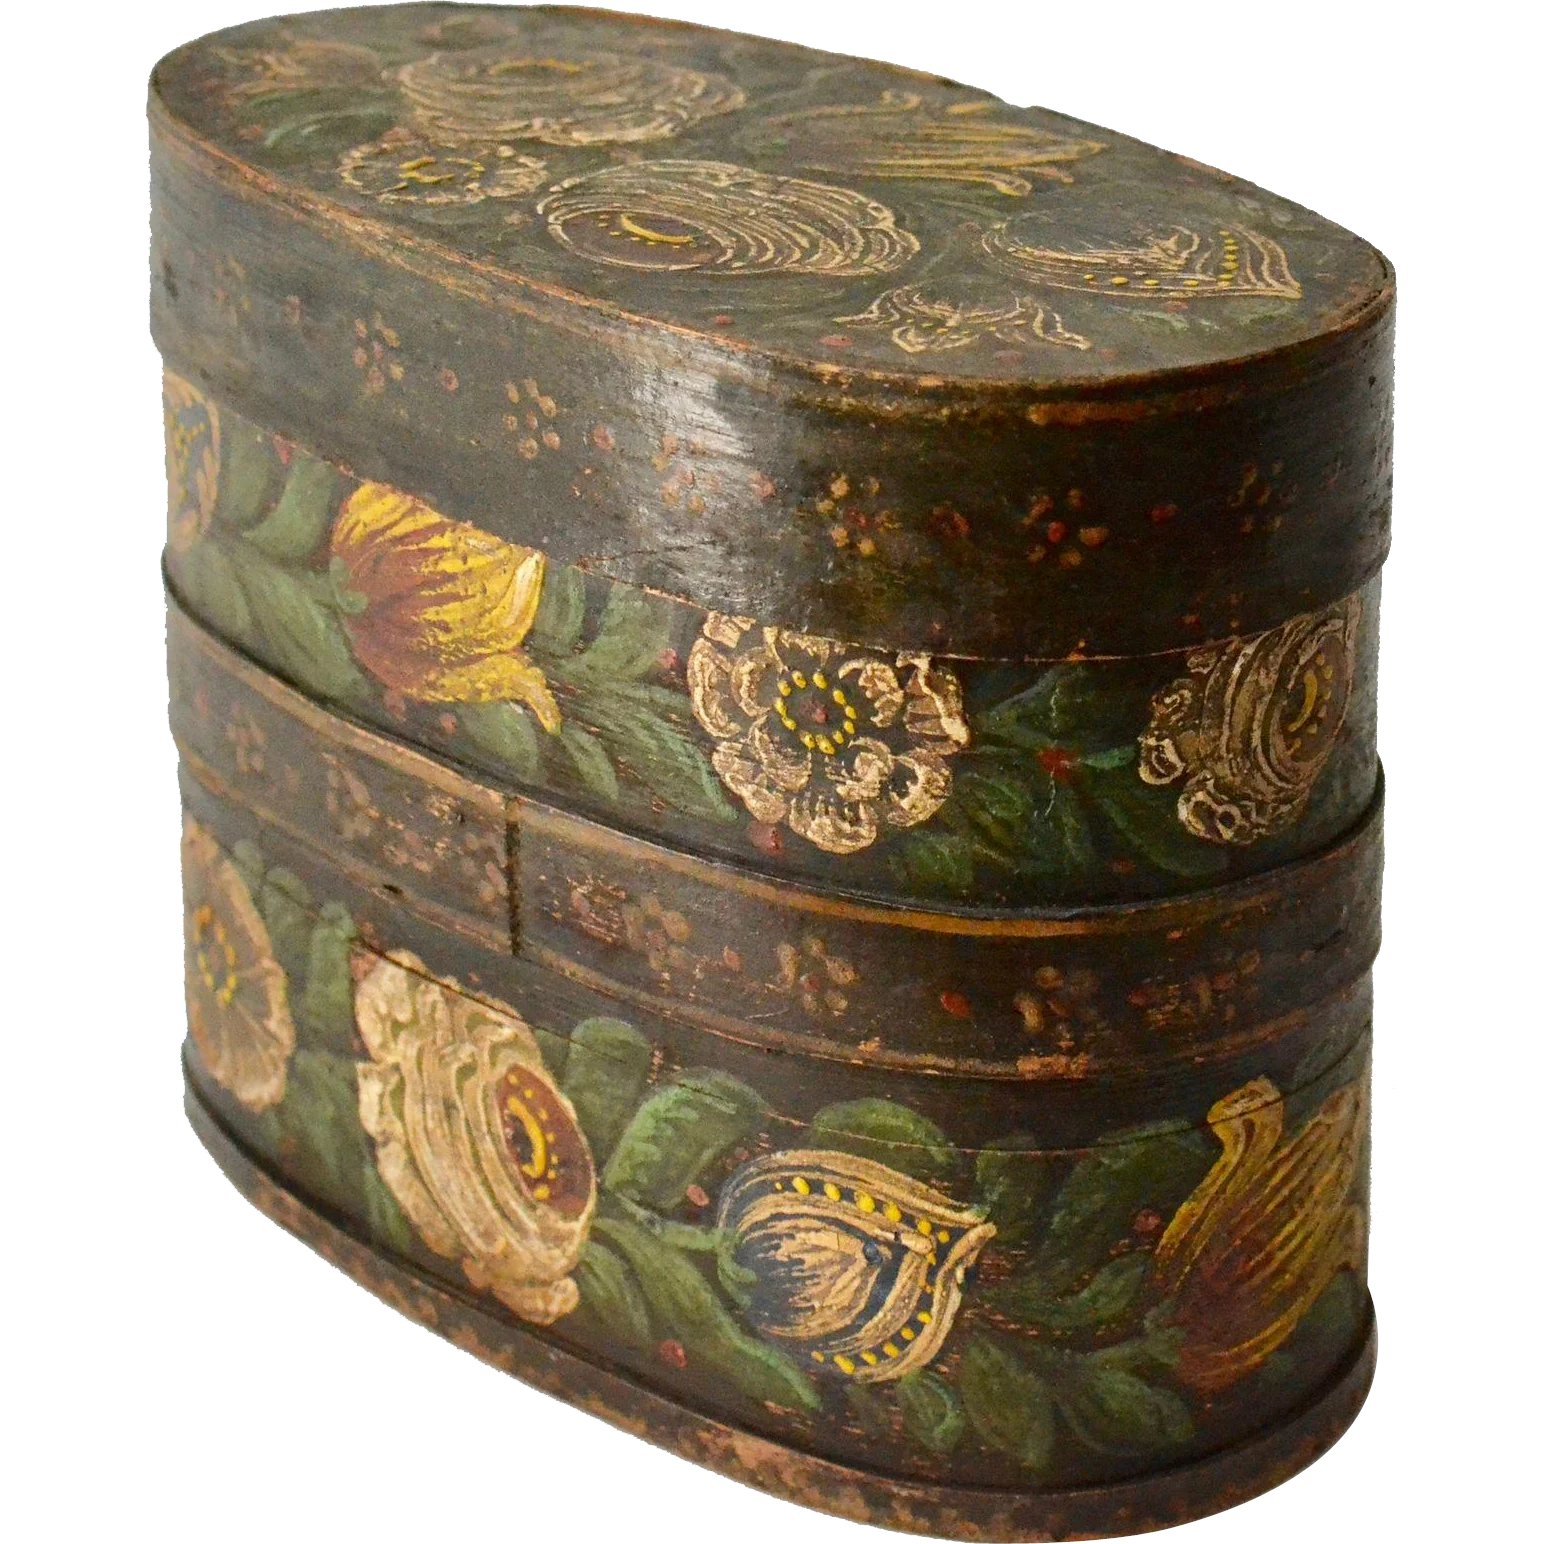 A Swedish Country / Folkart Flower Painted Wood Box  19th century